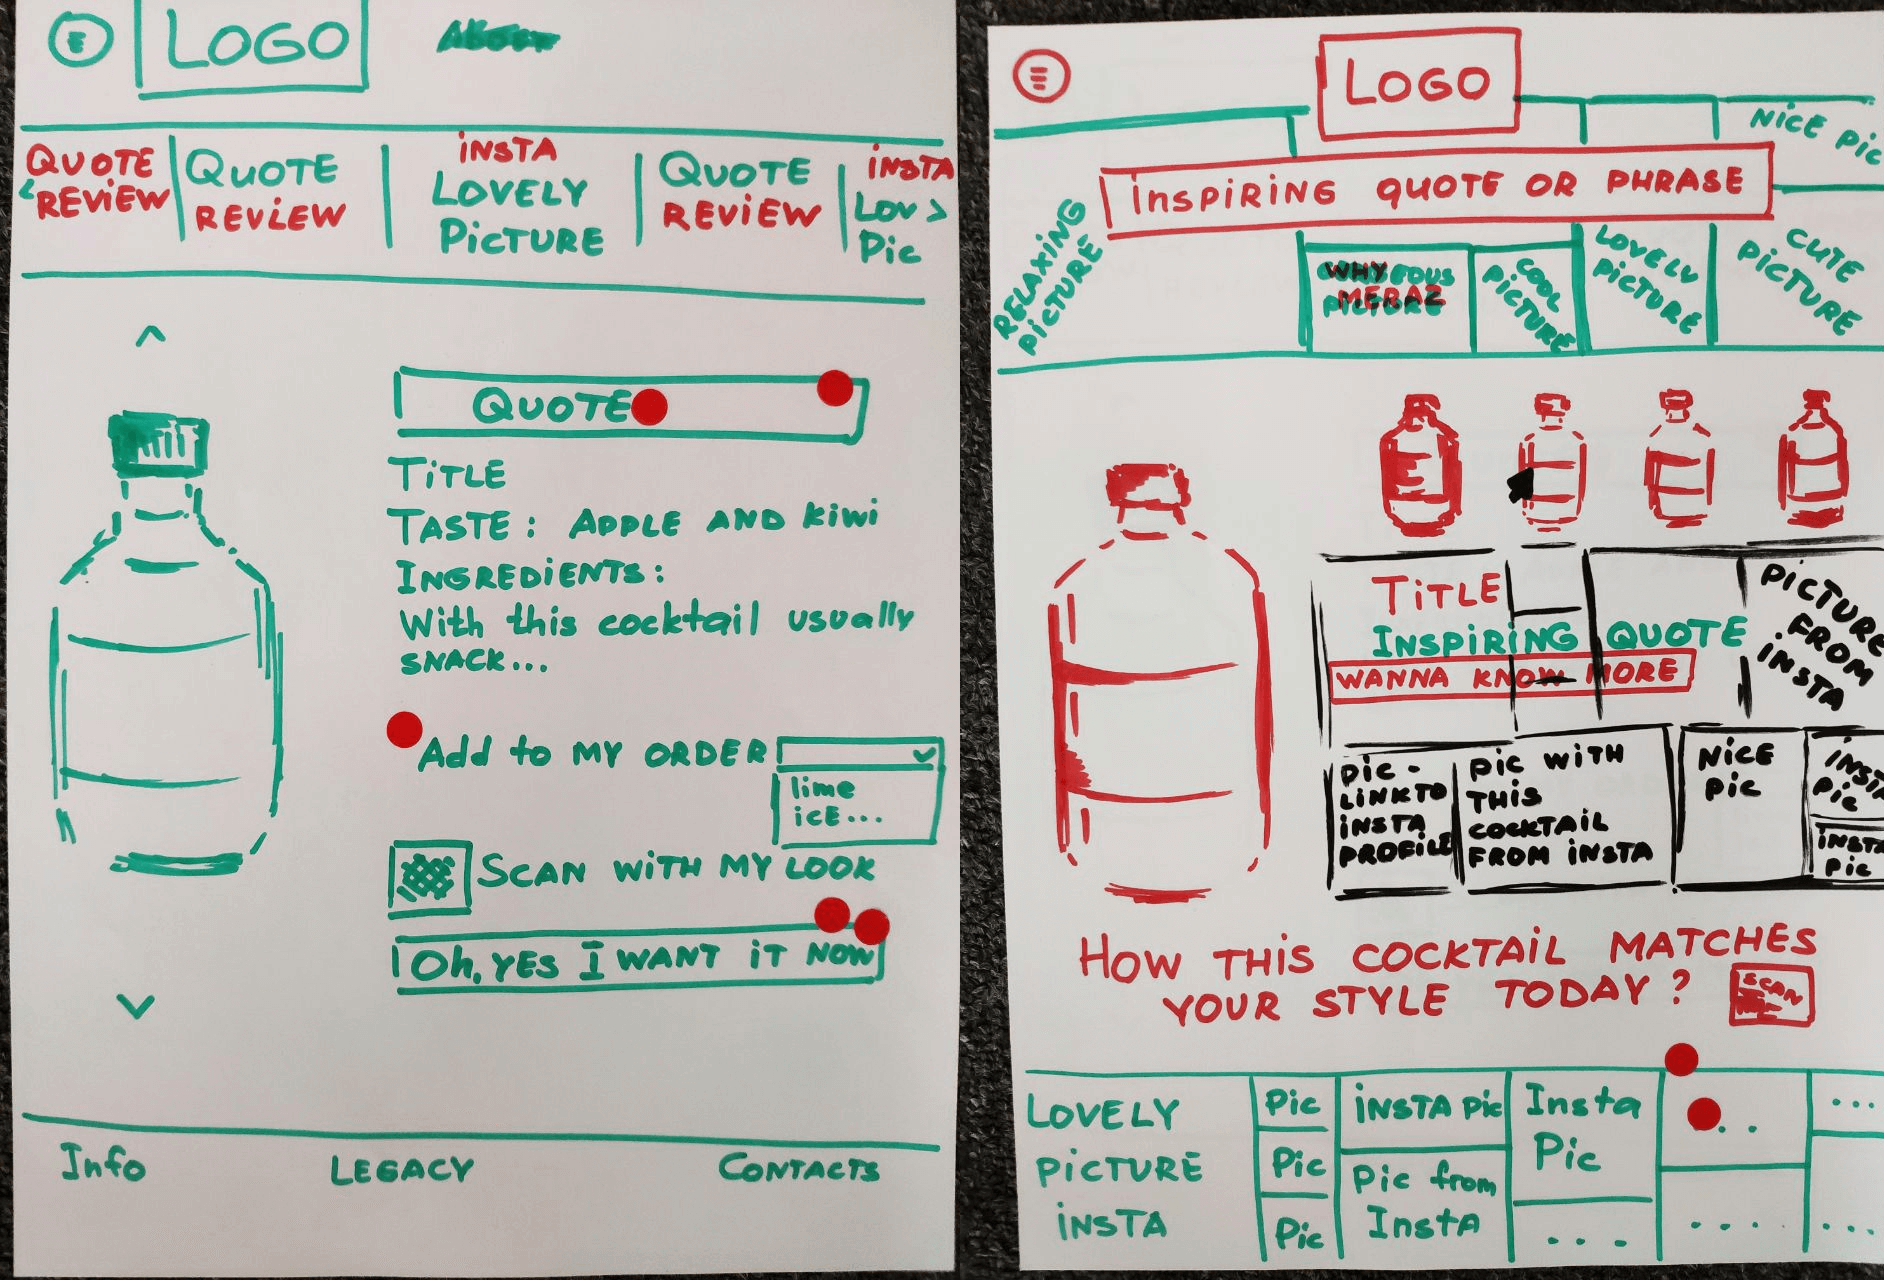 paper prototype for usability testing